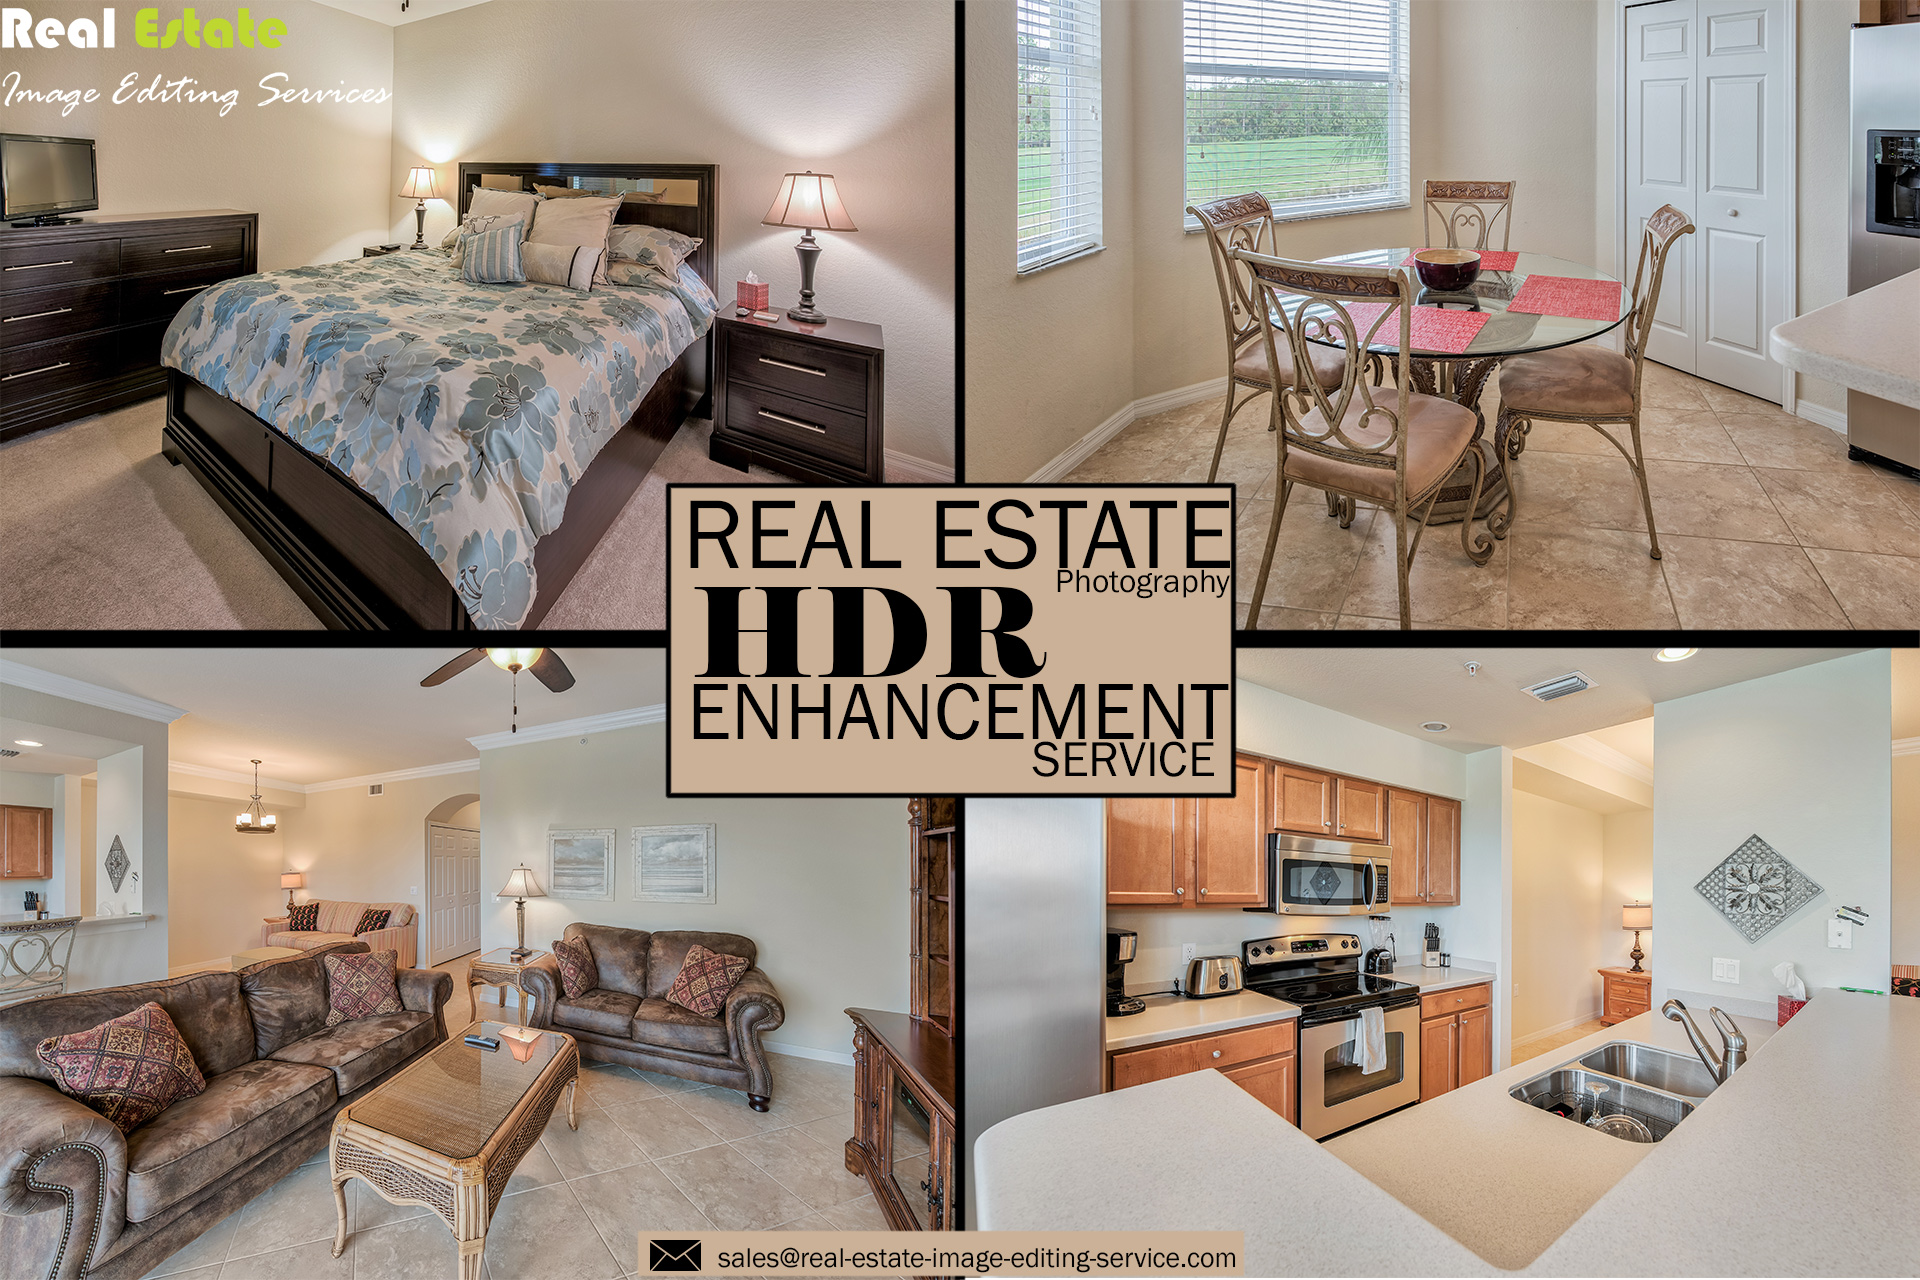 Real Estate HDR Photo Enhancement Services